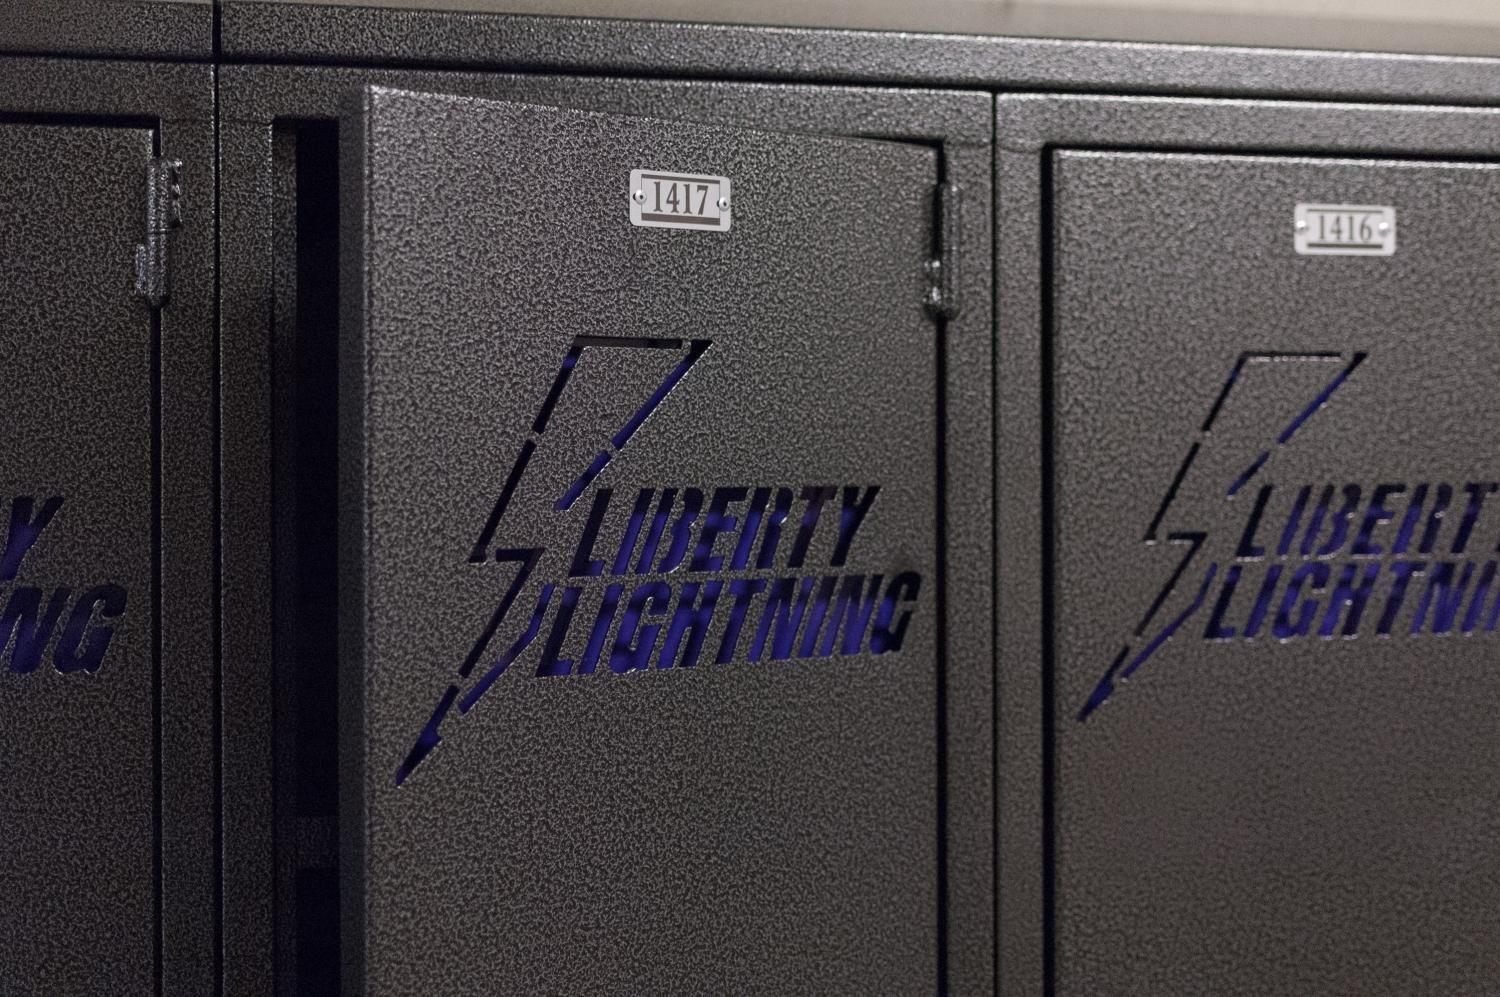 The new lockers at Liberty High are personalized with the Bolts' logo.